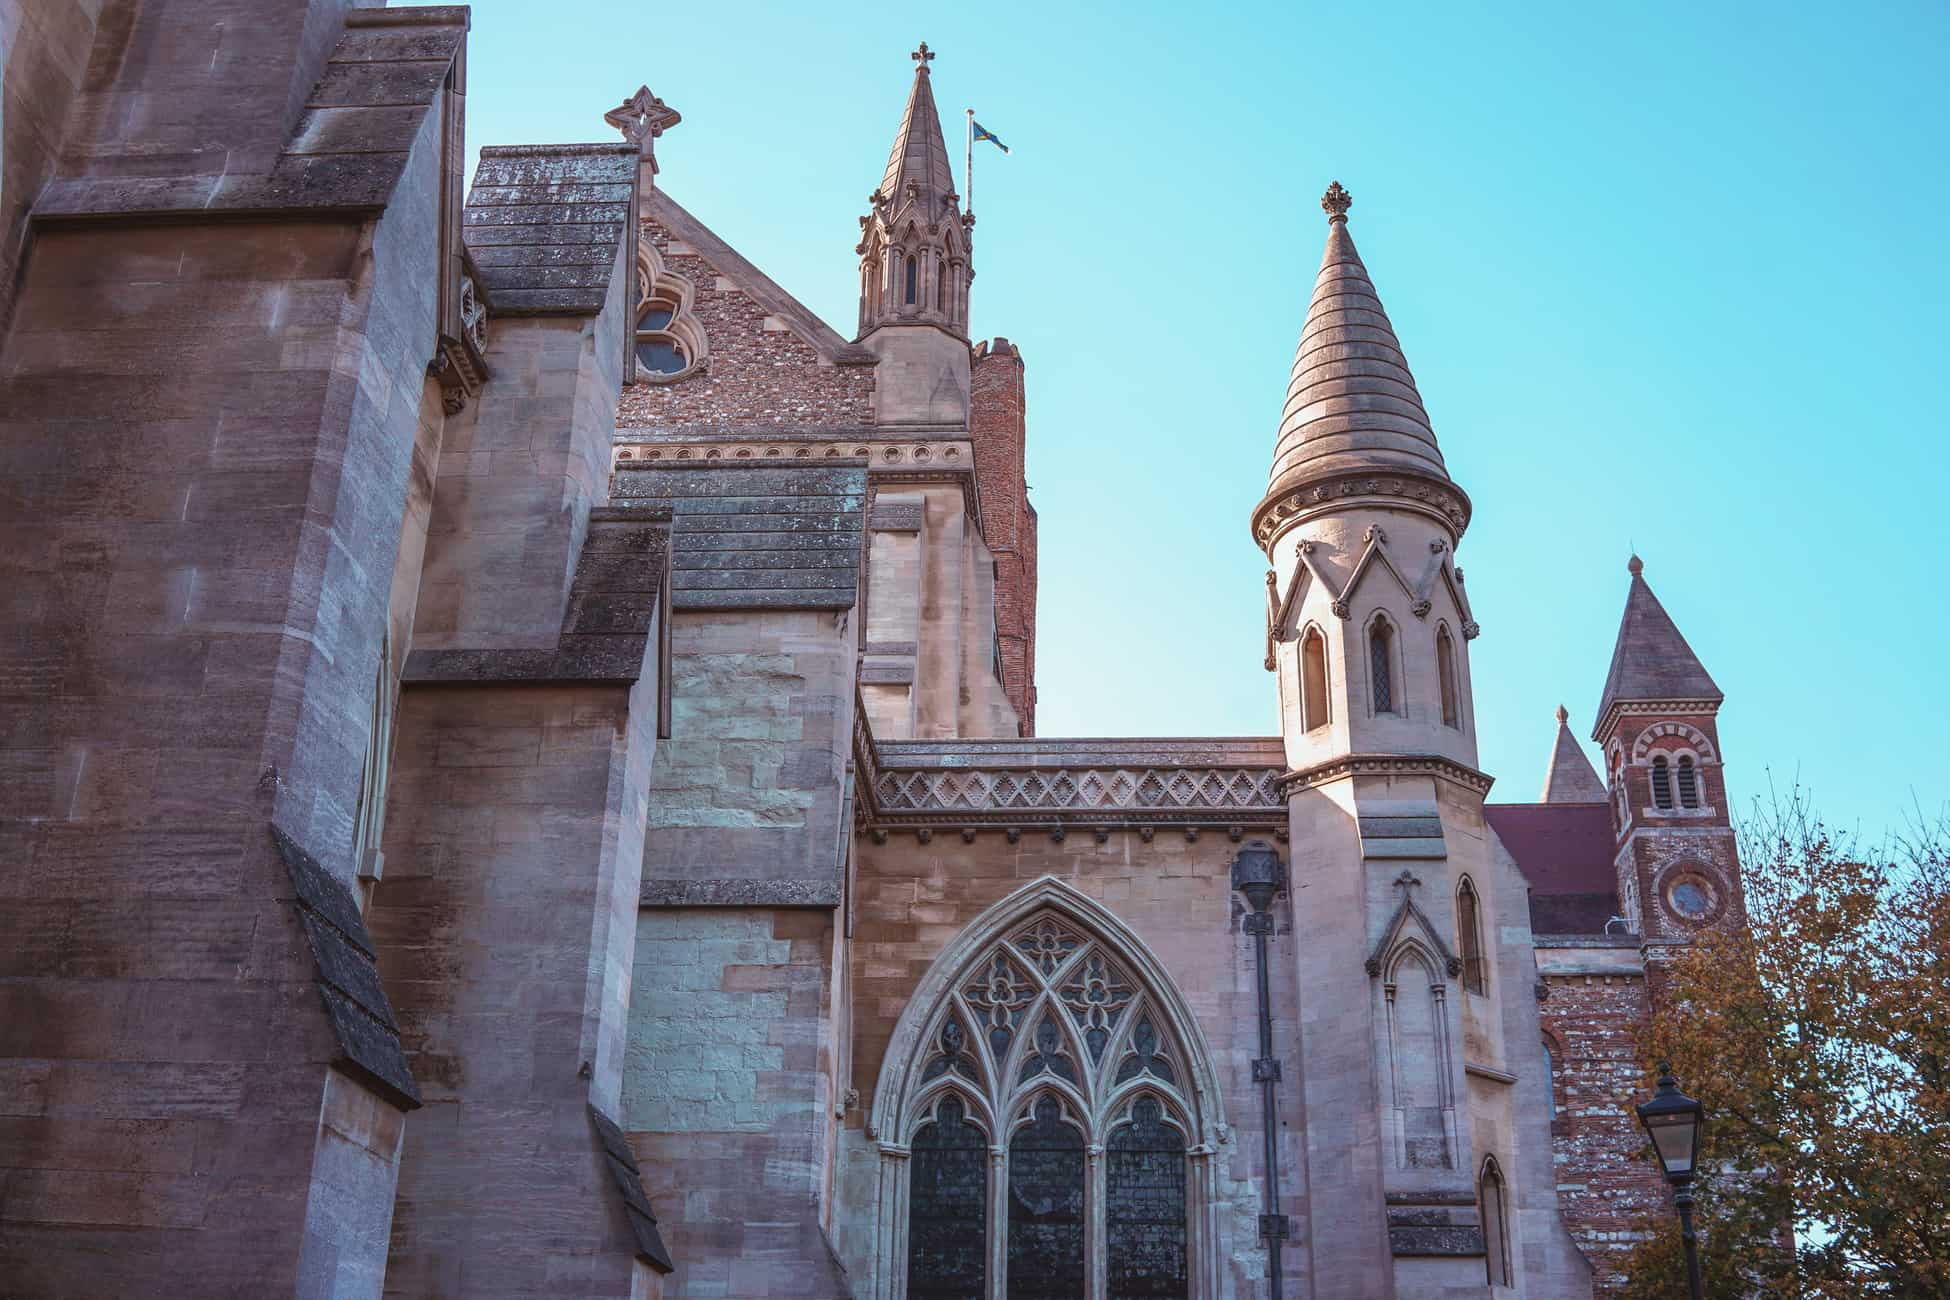 Day trip from London to St. Albans: best things to do in Saint Albans